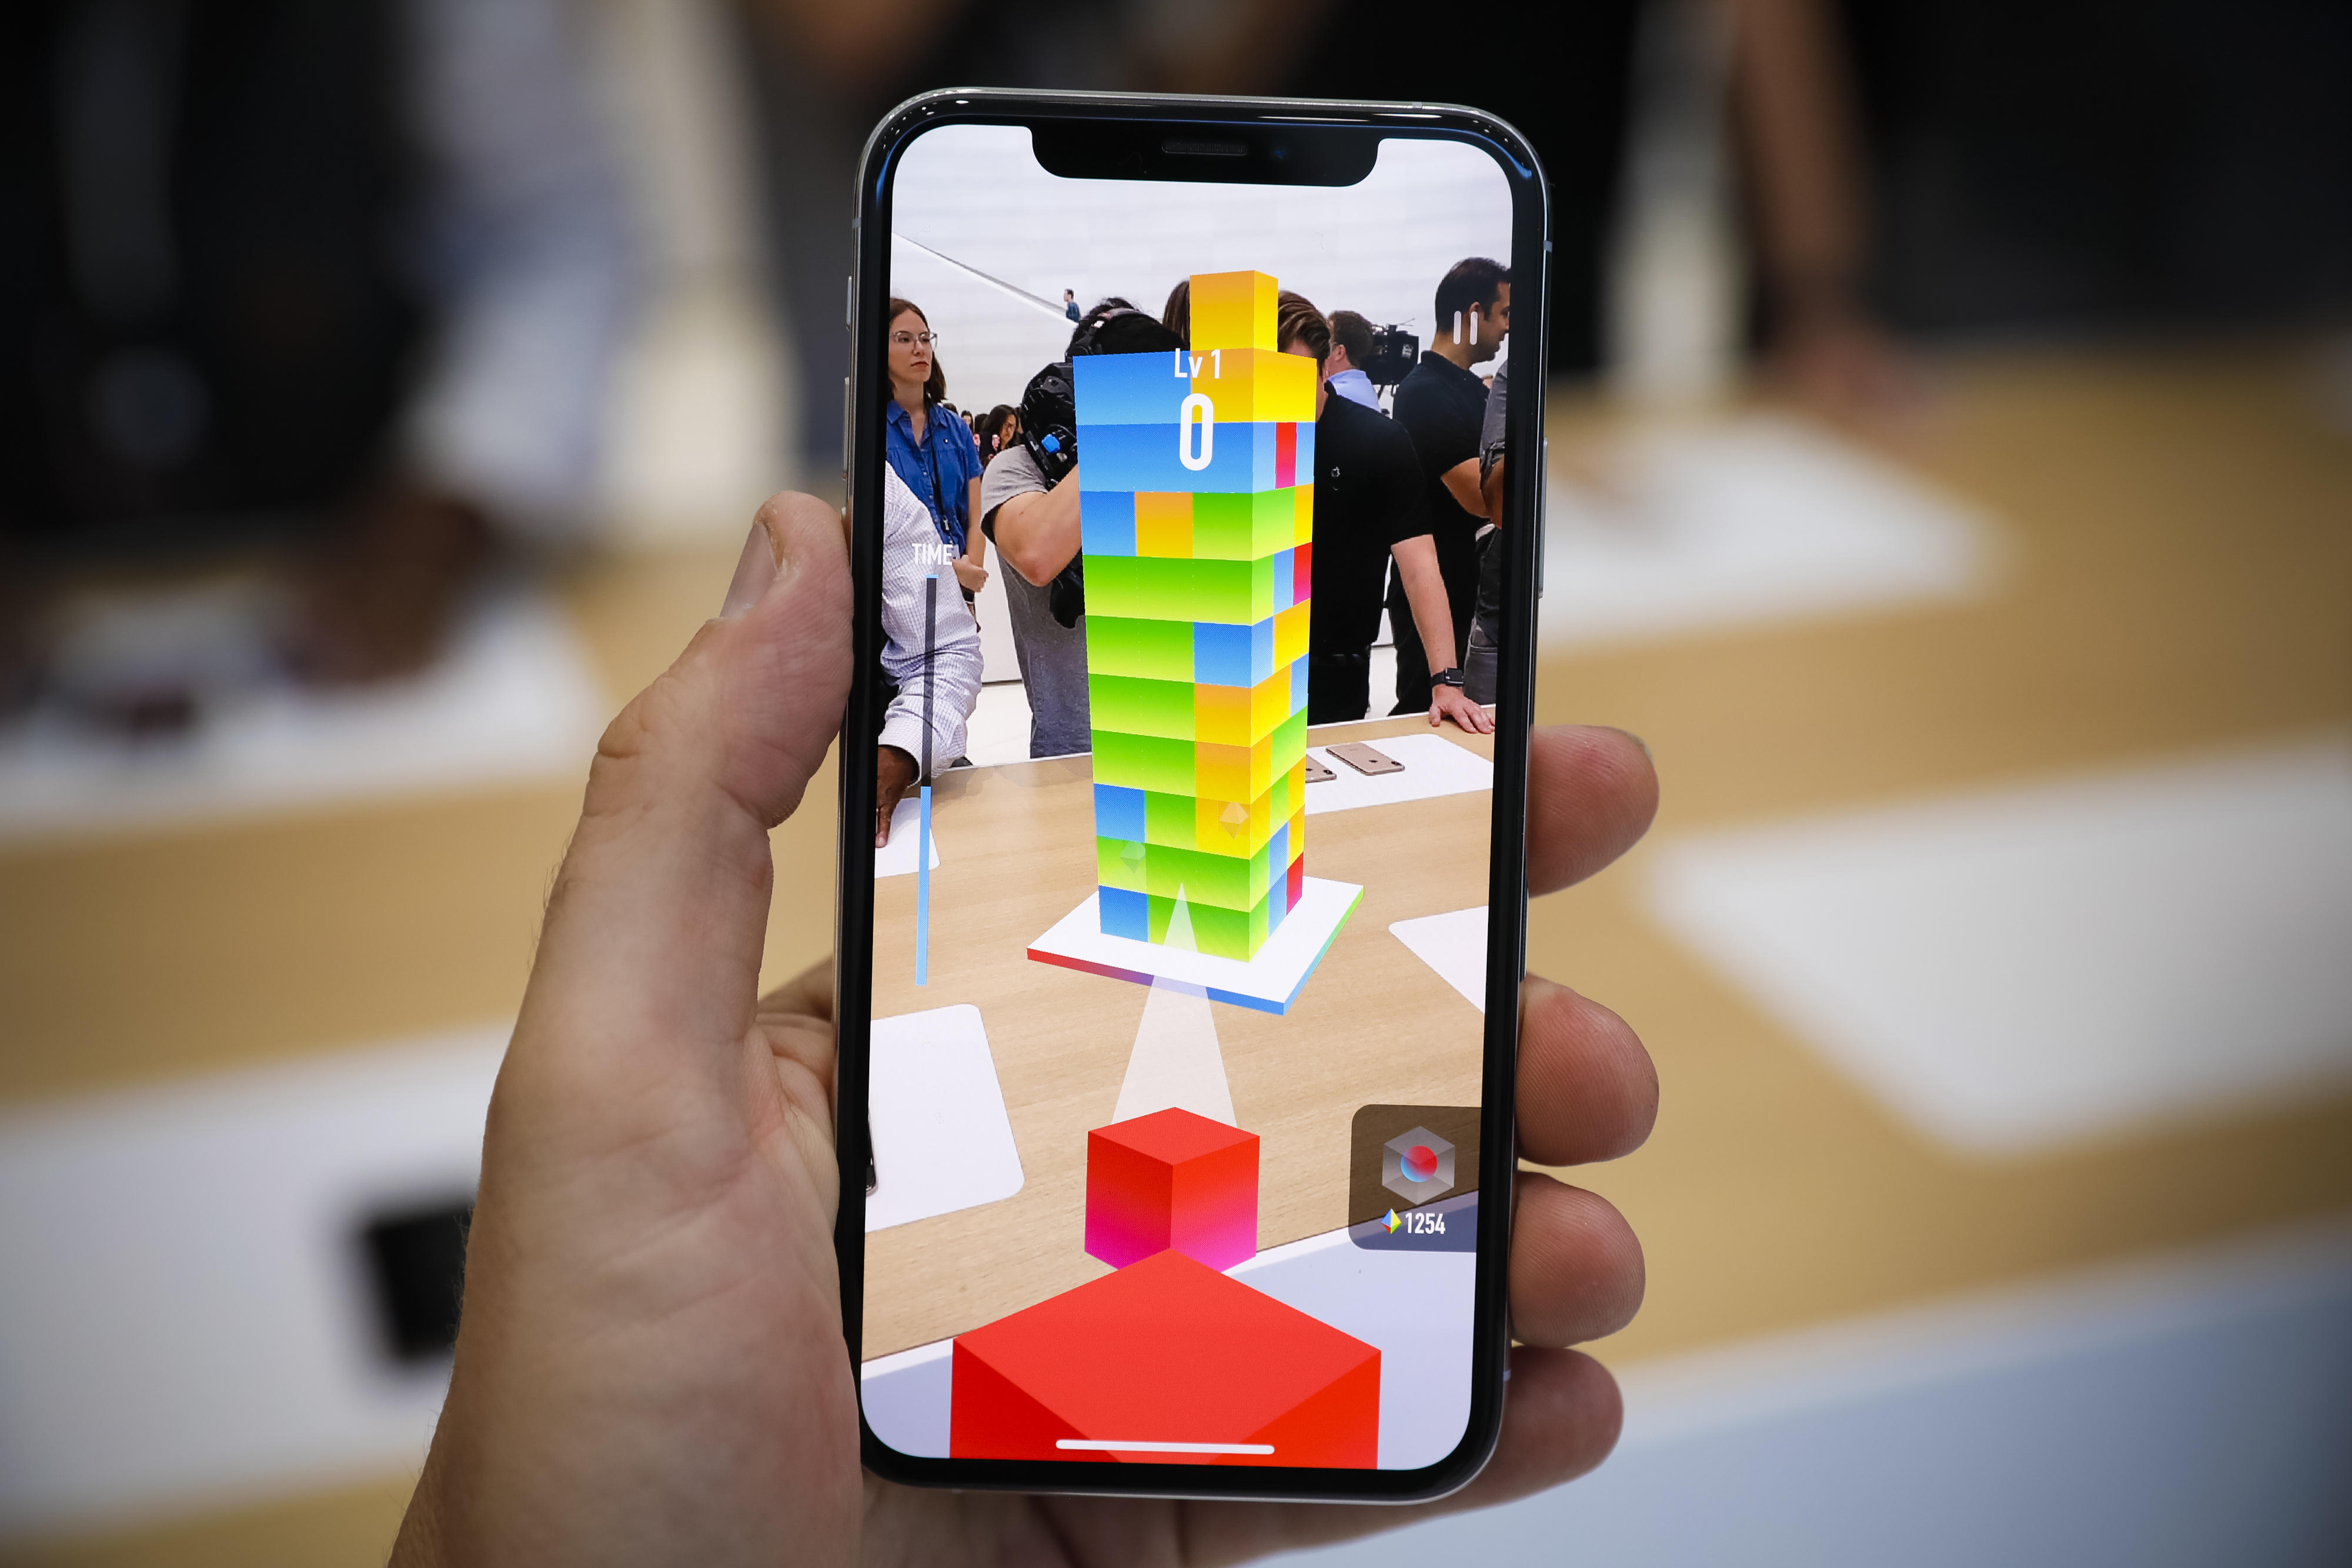 apple-event-091218-iphone-xs-iphone-xs-max-ar-augmented-reality-games-0866